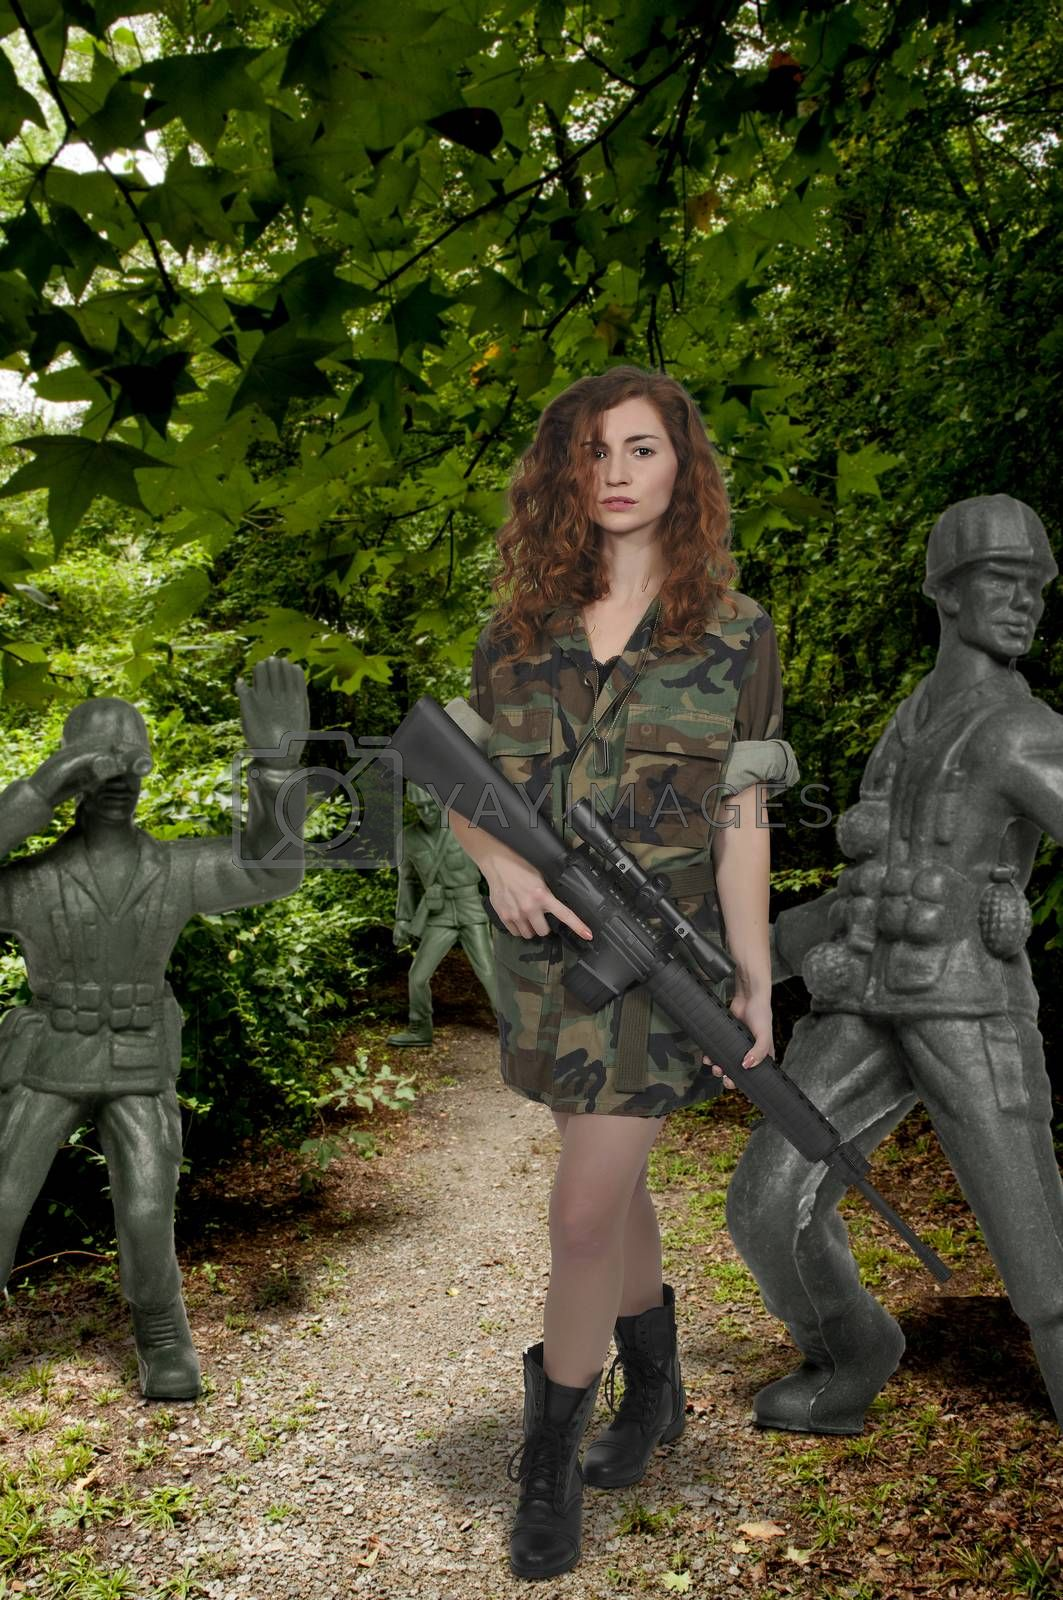 Beautiful young woman soldier with a M16 rifle and plastic toy army men